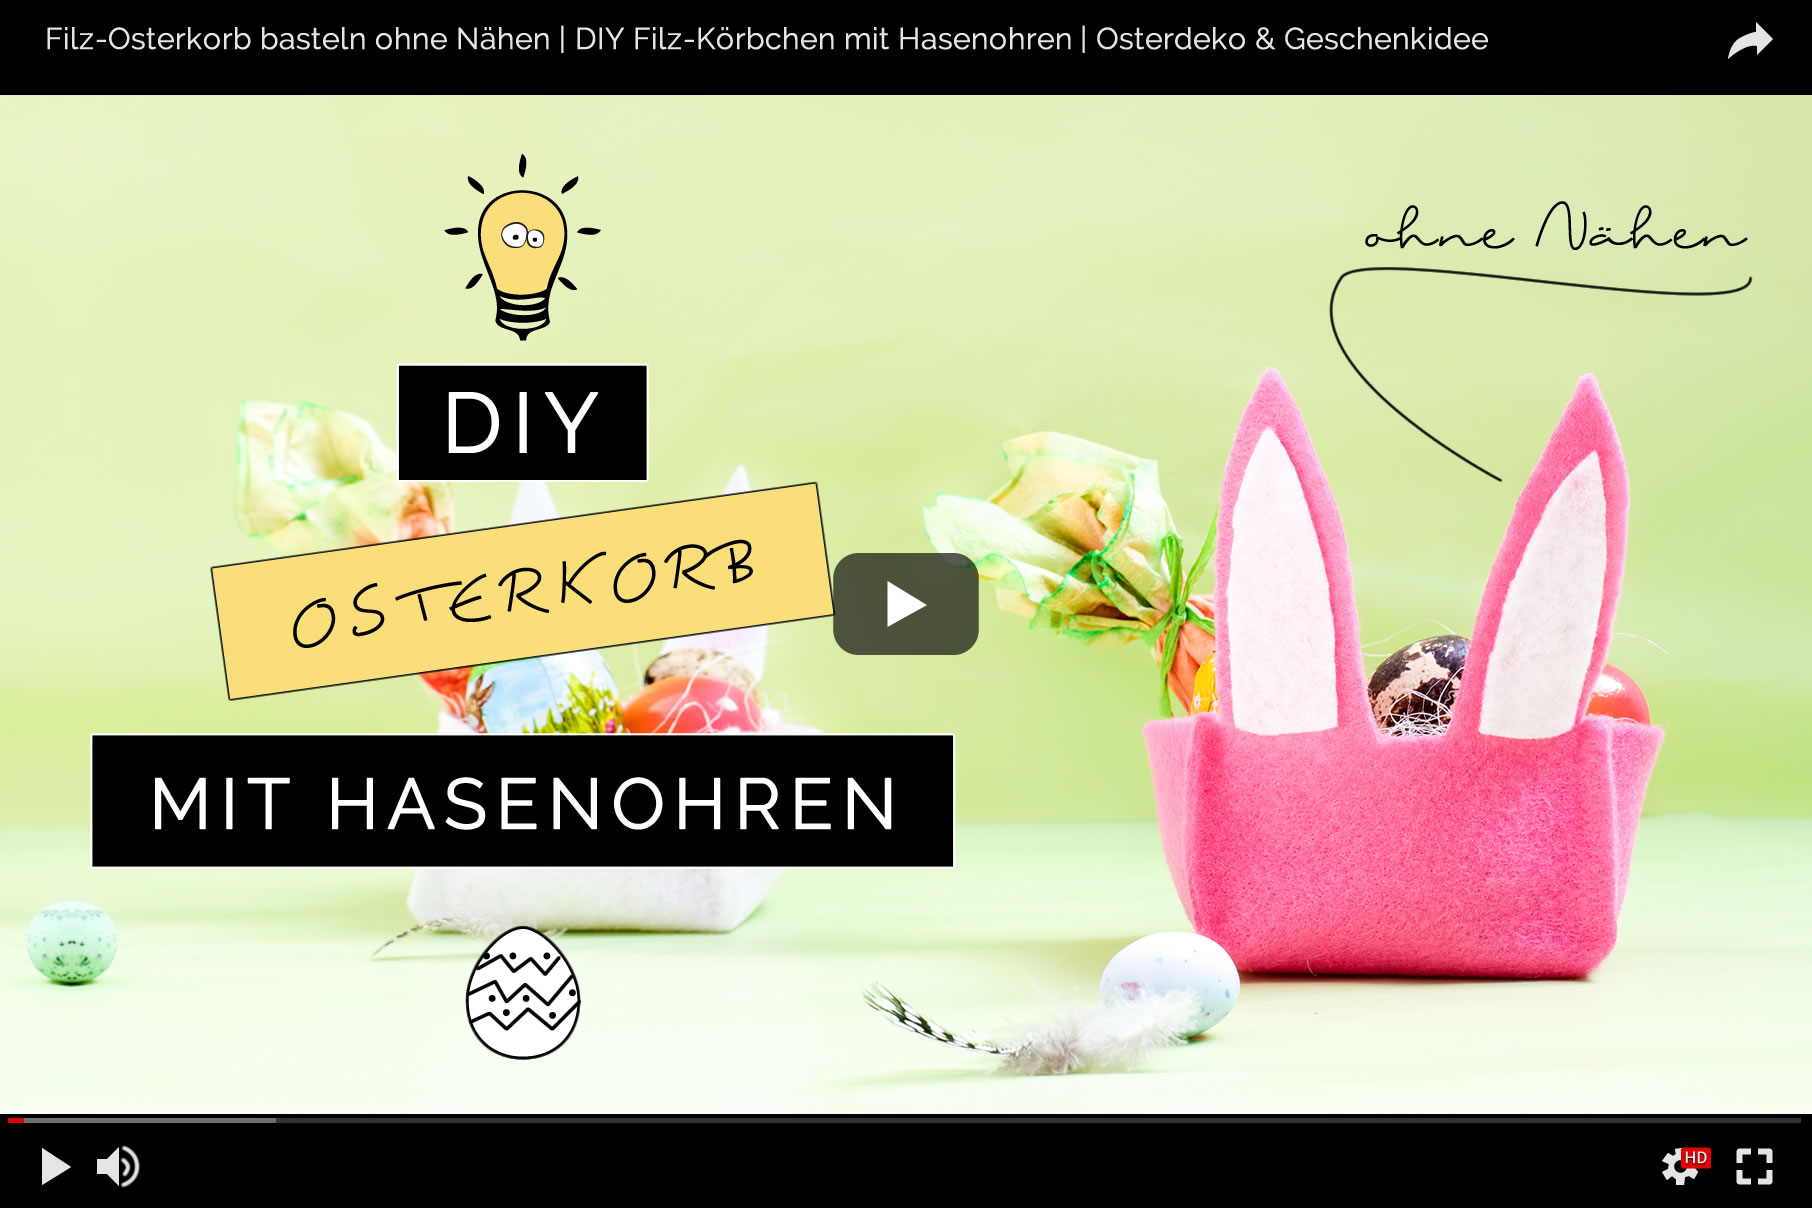 filz osterkorb basteln ohne n hen diy blog aus dem rheinland. Black Bedroom Furniture Sets. Home Design Ideas